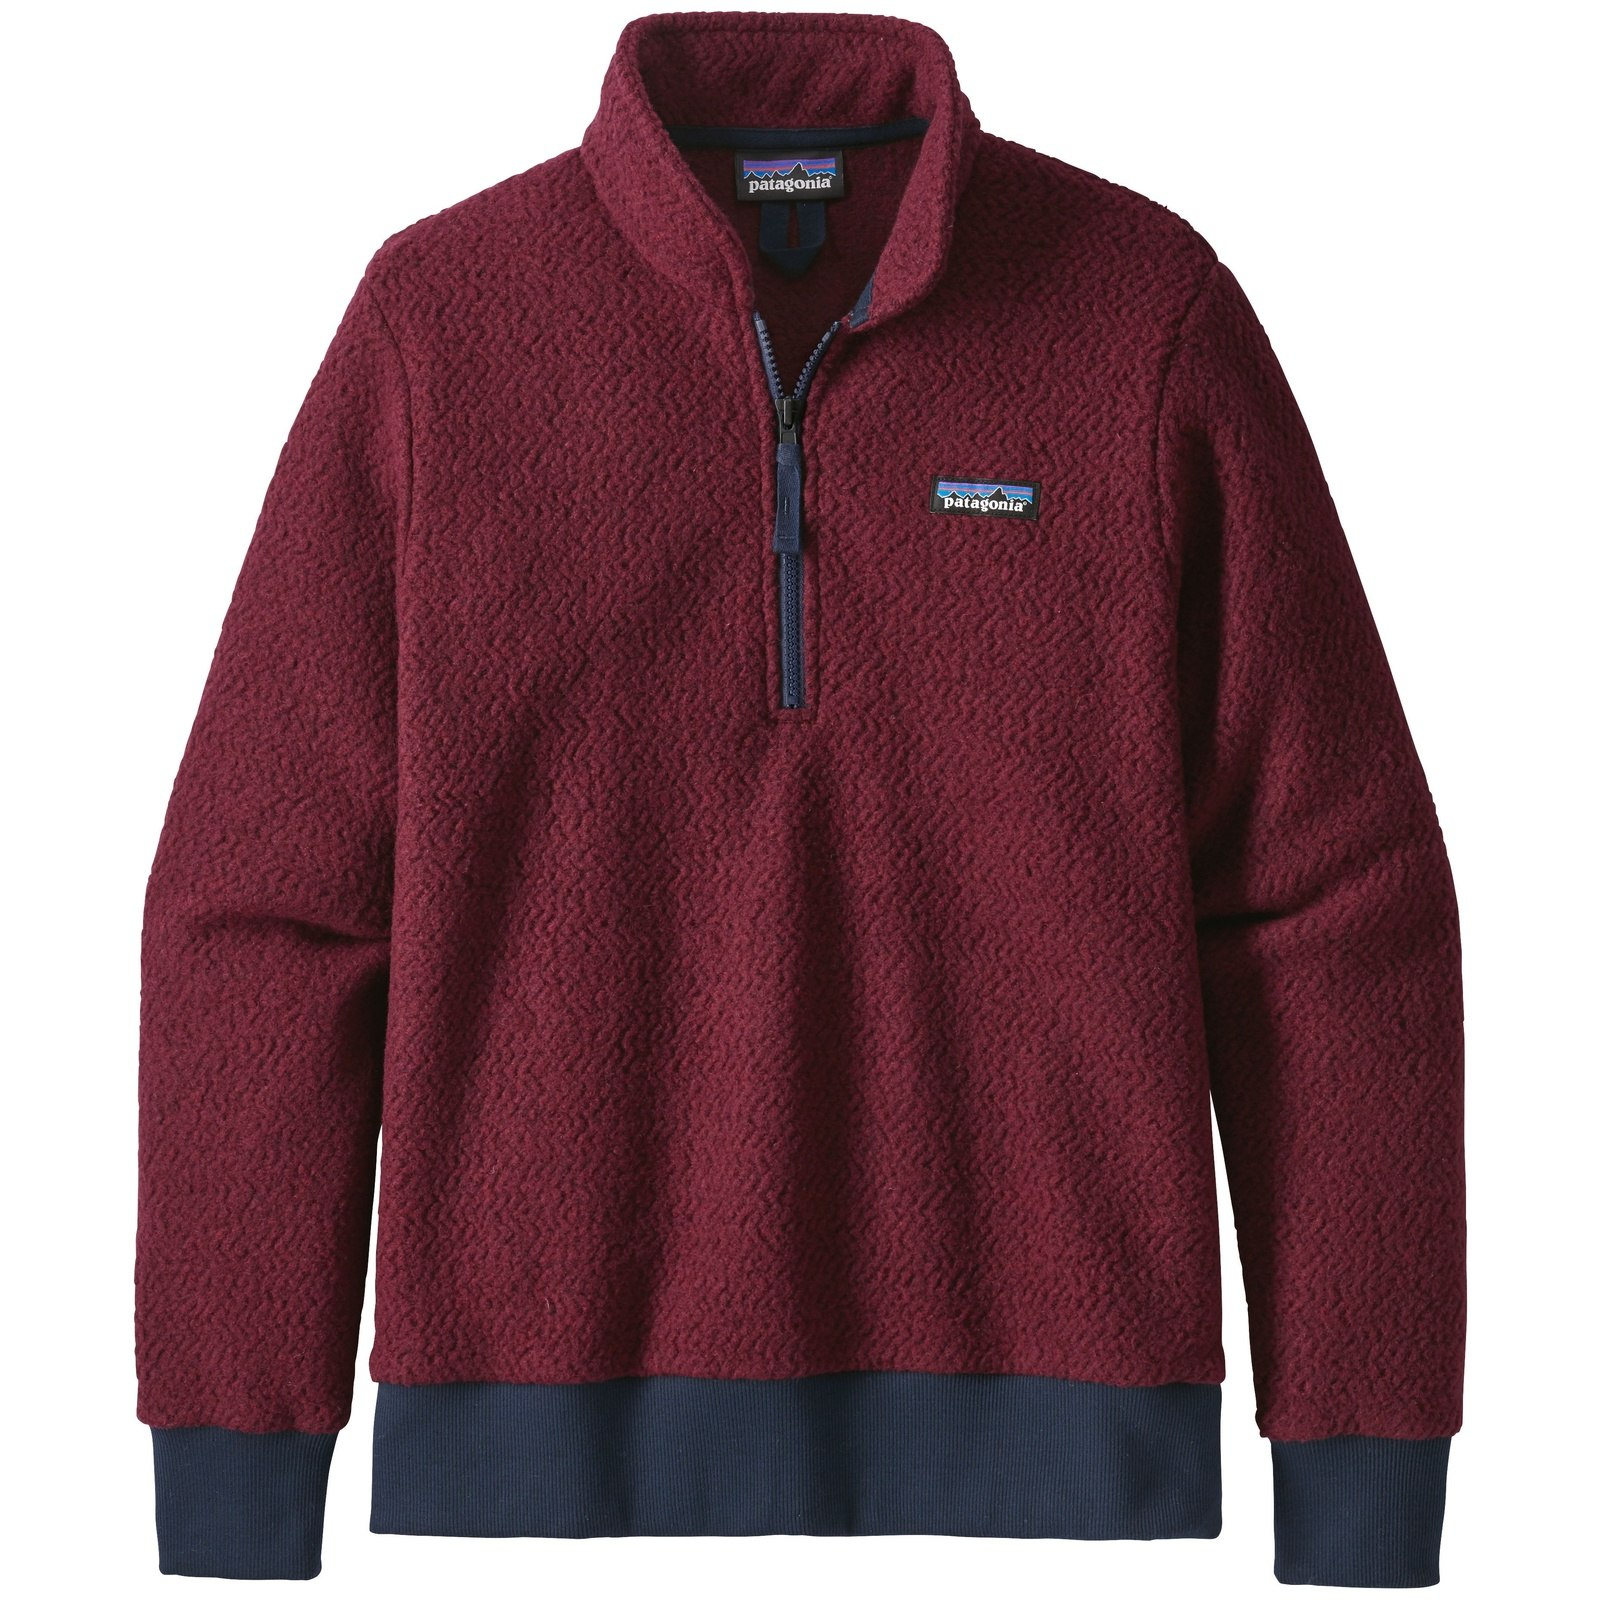 Patterned Patagonia Fleece Simple Ideas